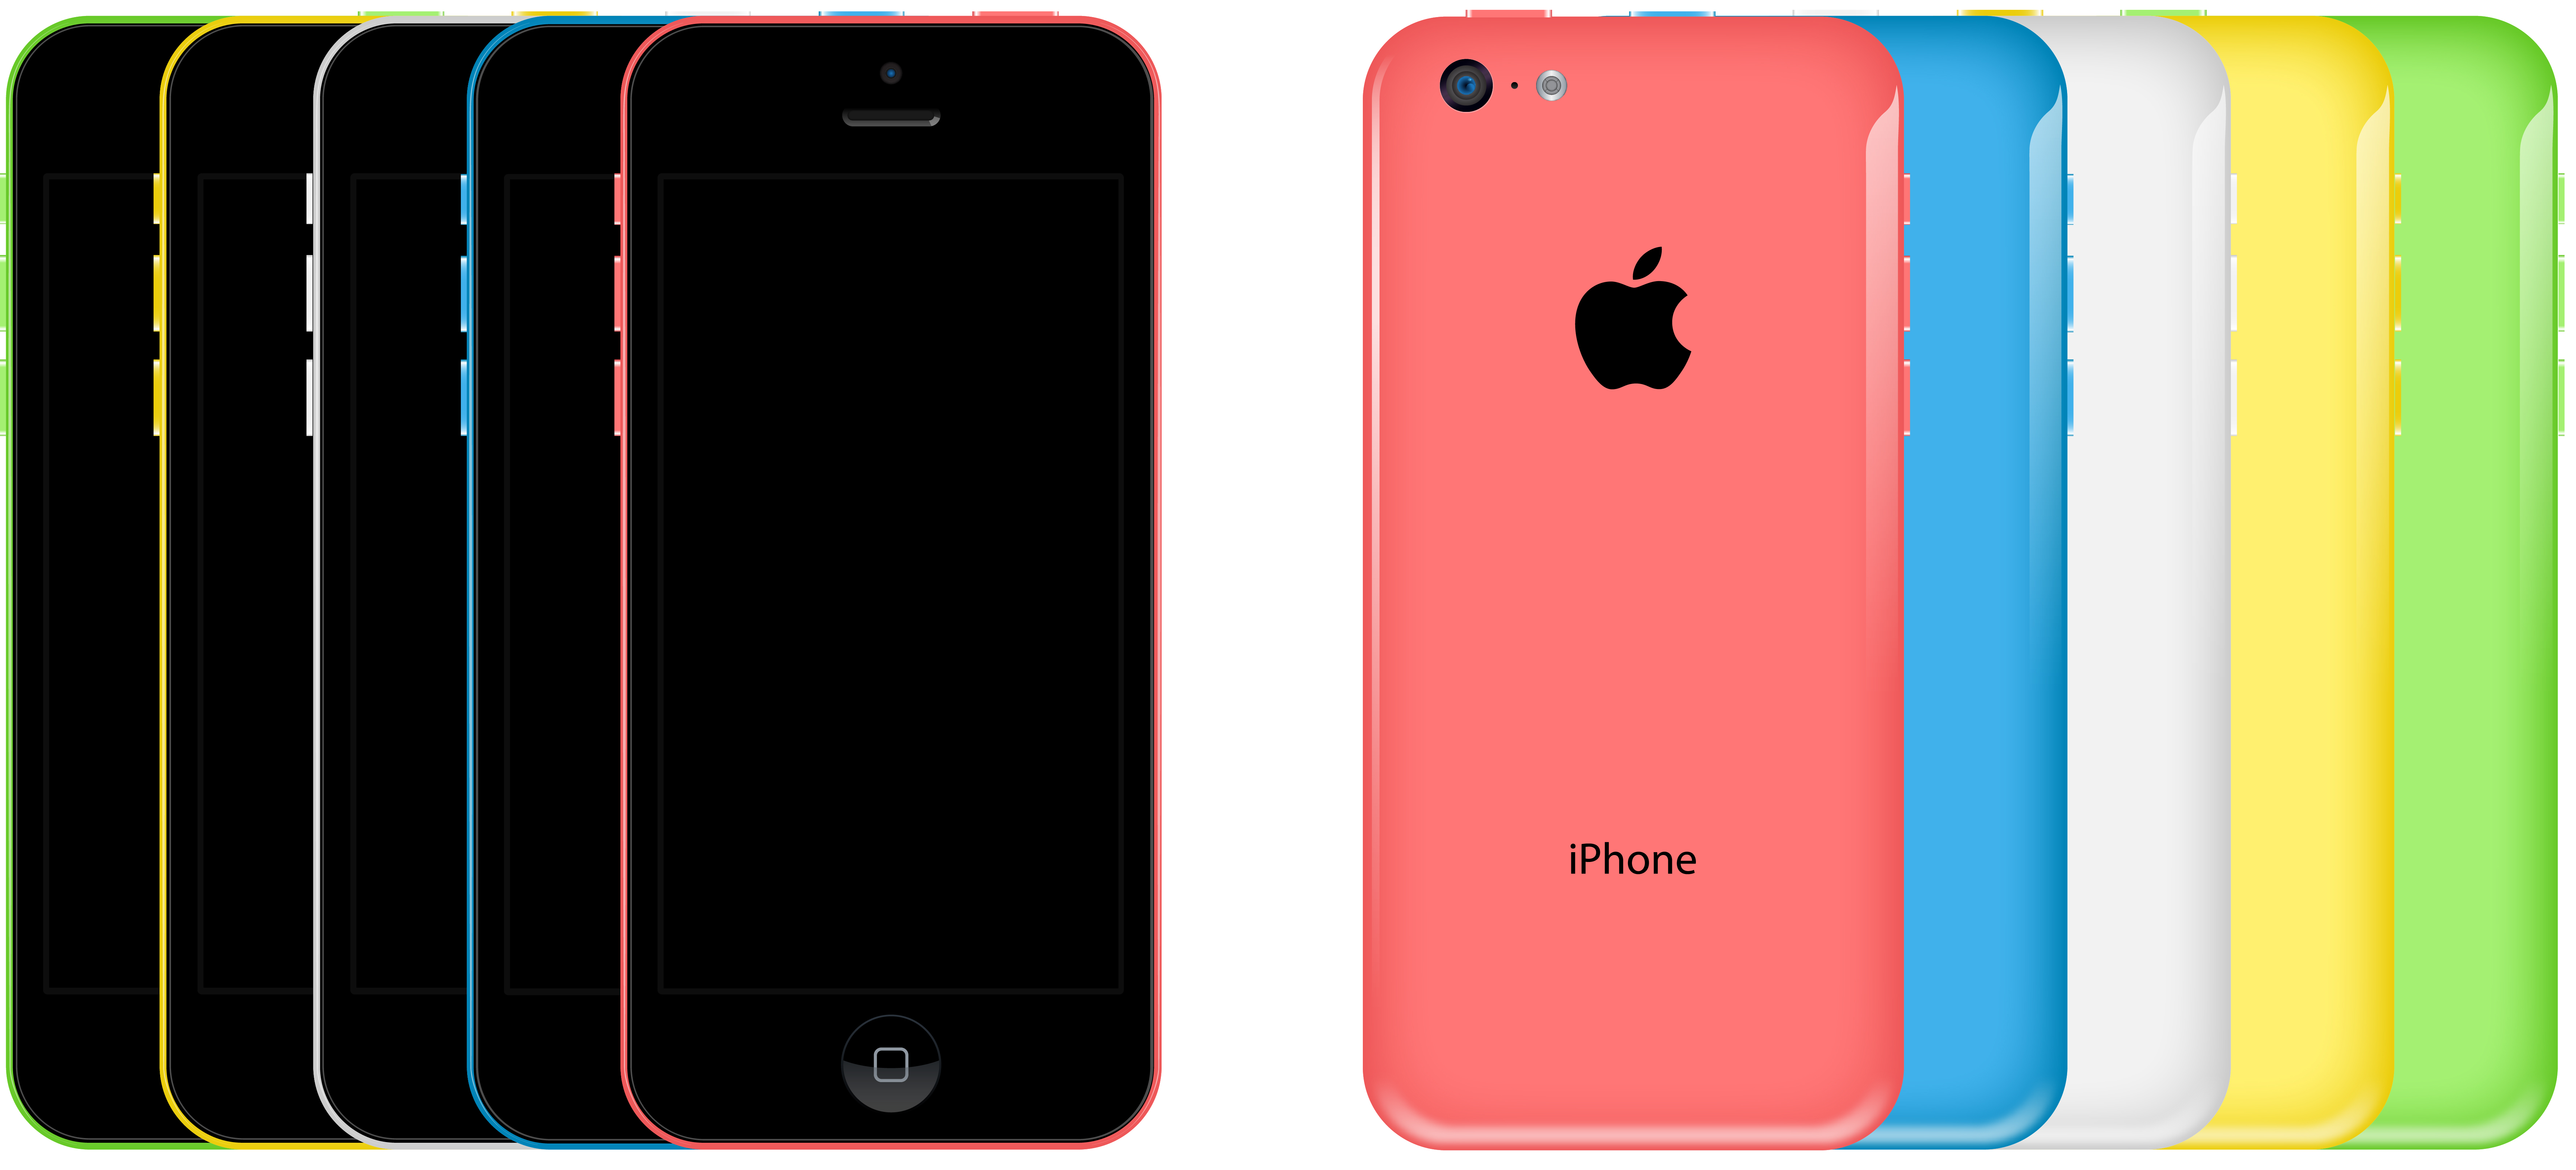 iphone 5c free iphone 5c free vector by dario1crisafulli on deviantart 4991